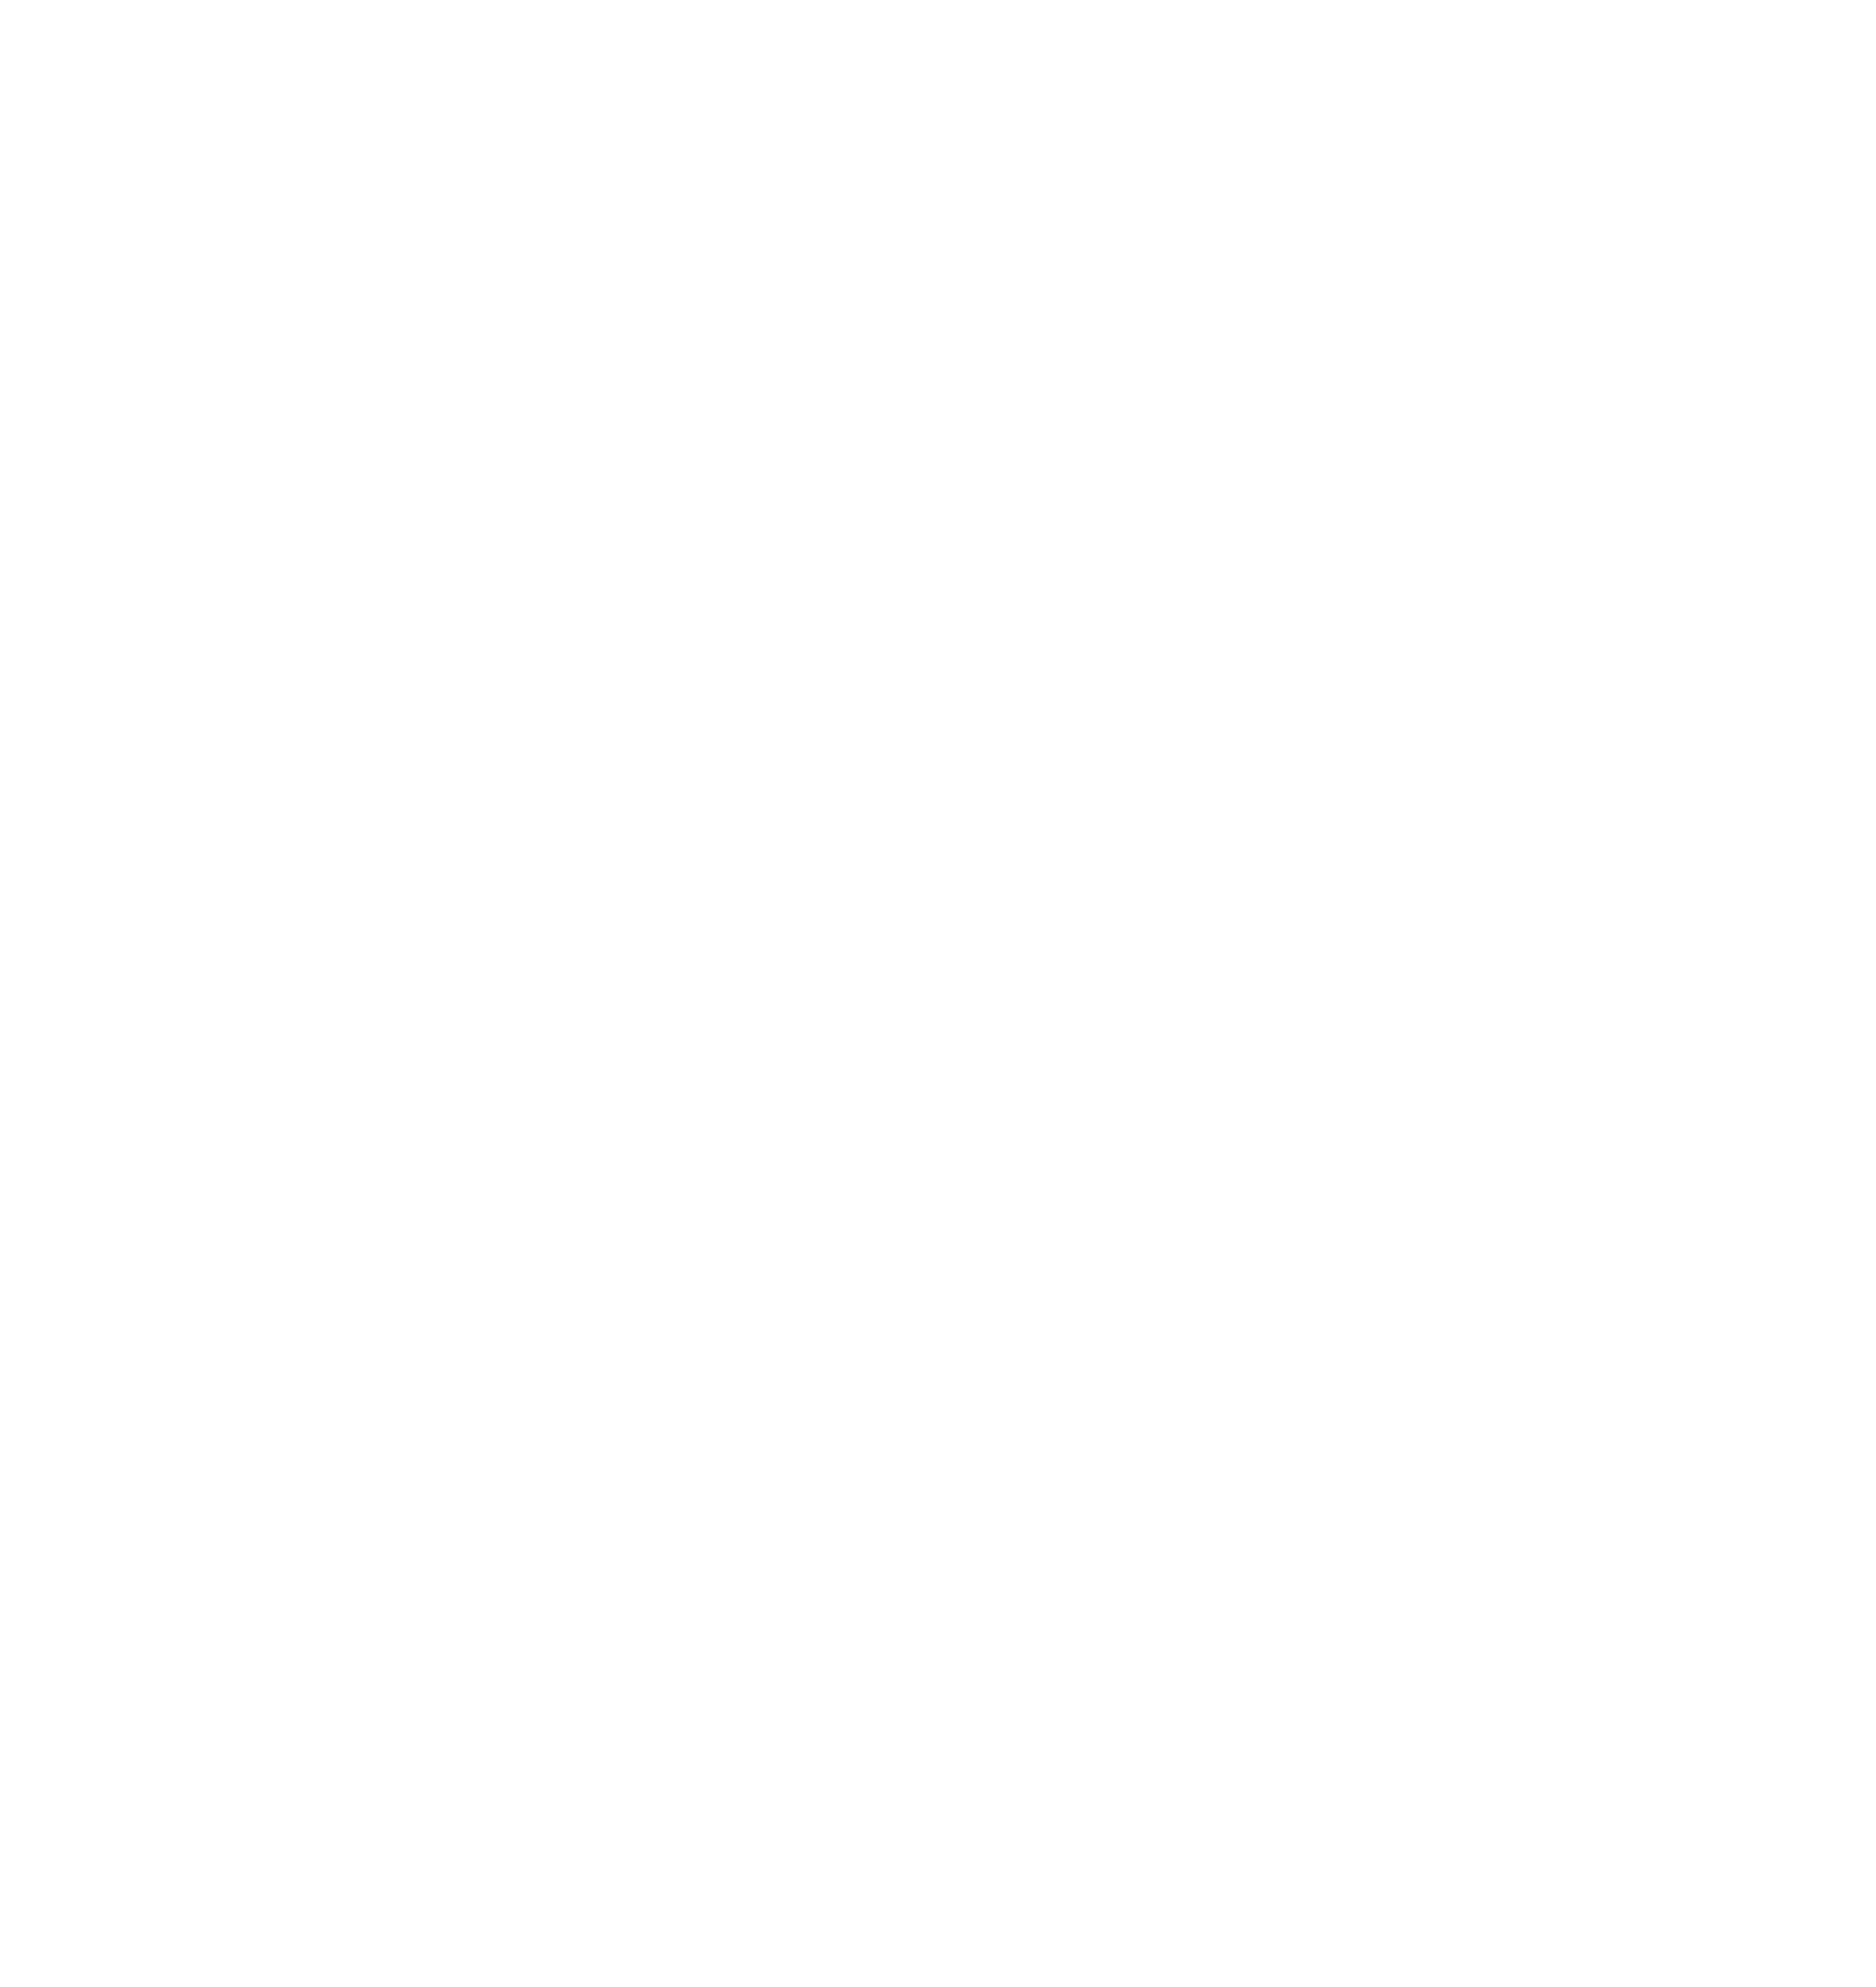 Agentur für Online Marketing, Social Media, Google- und Newslettermarketing in der Ostschweiz, Region Frauenfeld, Winterthur, Wil, St. Gallen & Thurgau.